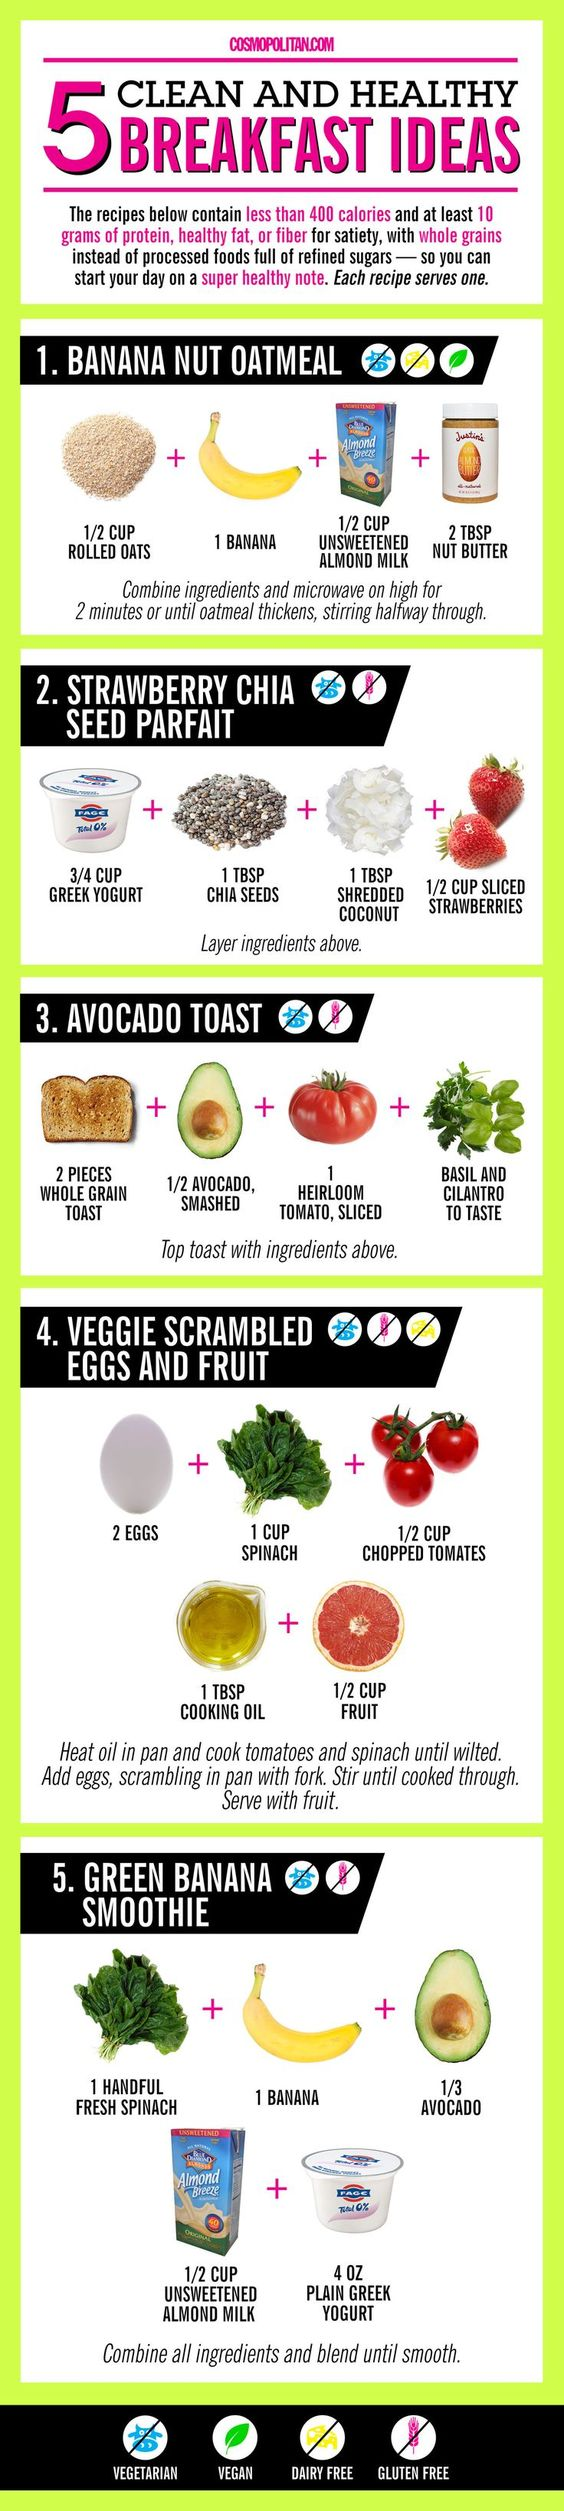 How to Eat Healthy Without Feeling Hungry